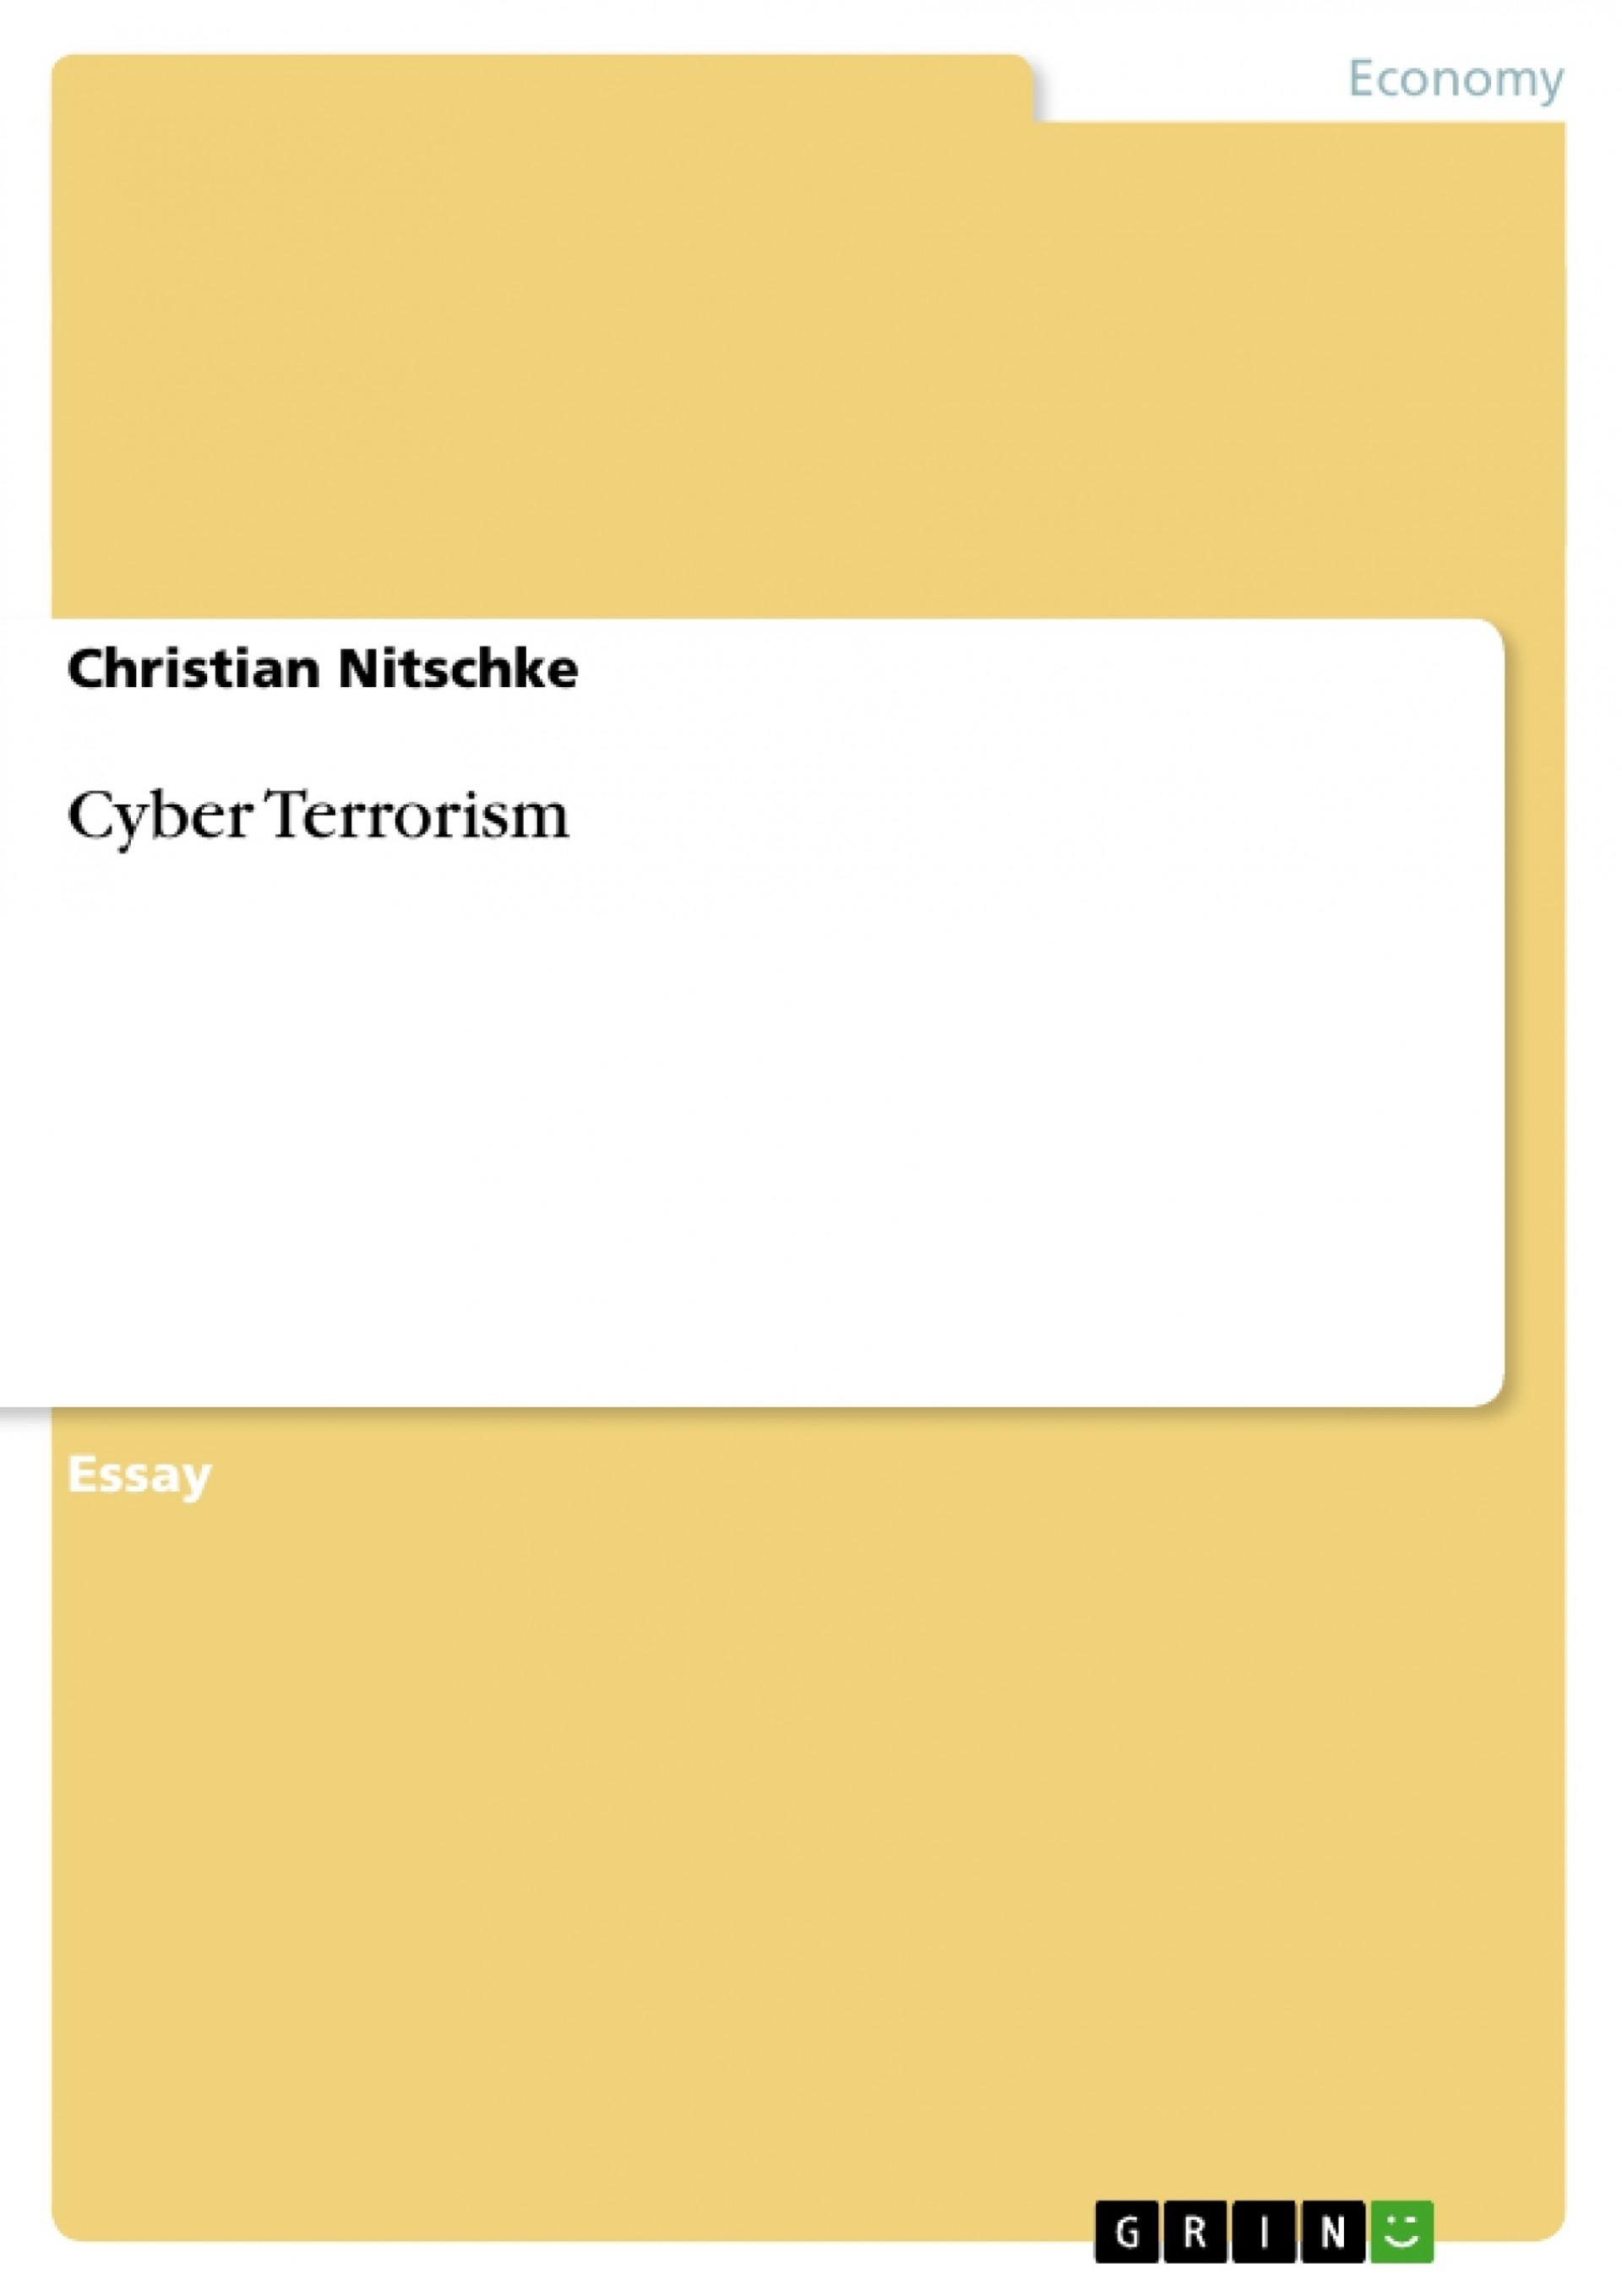 008 Research Paper 25026 0 Cyber Terrorism Imposing Essay 1920